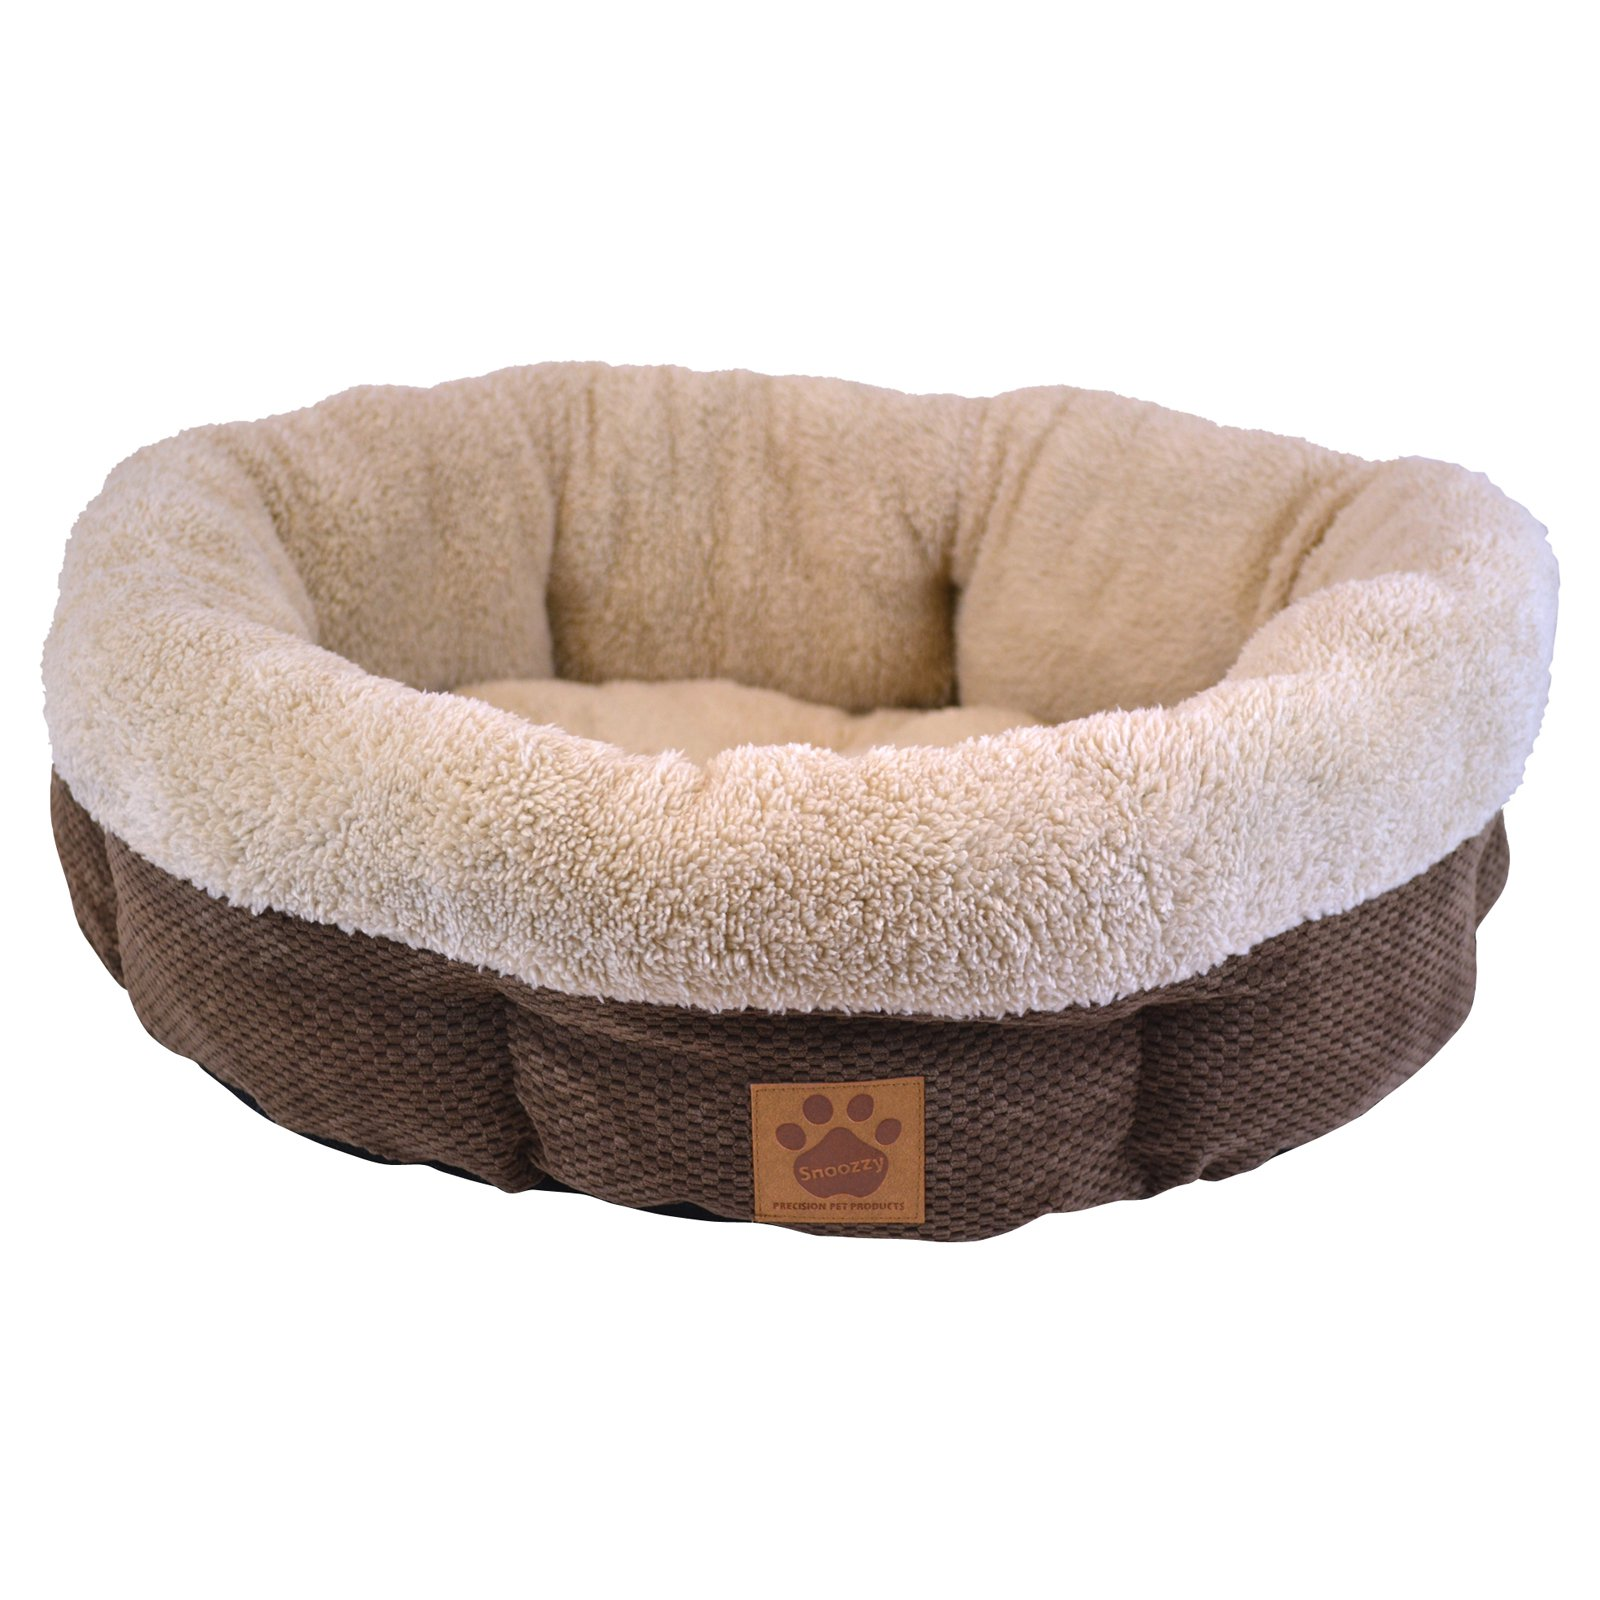 Precision Pets Shearling Round Bed - Coffee